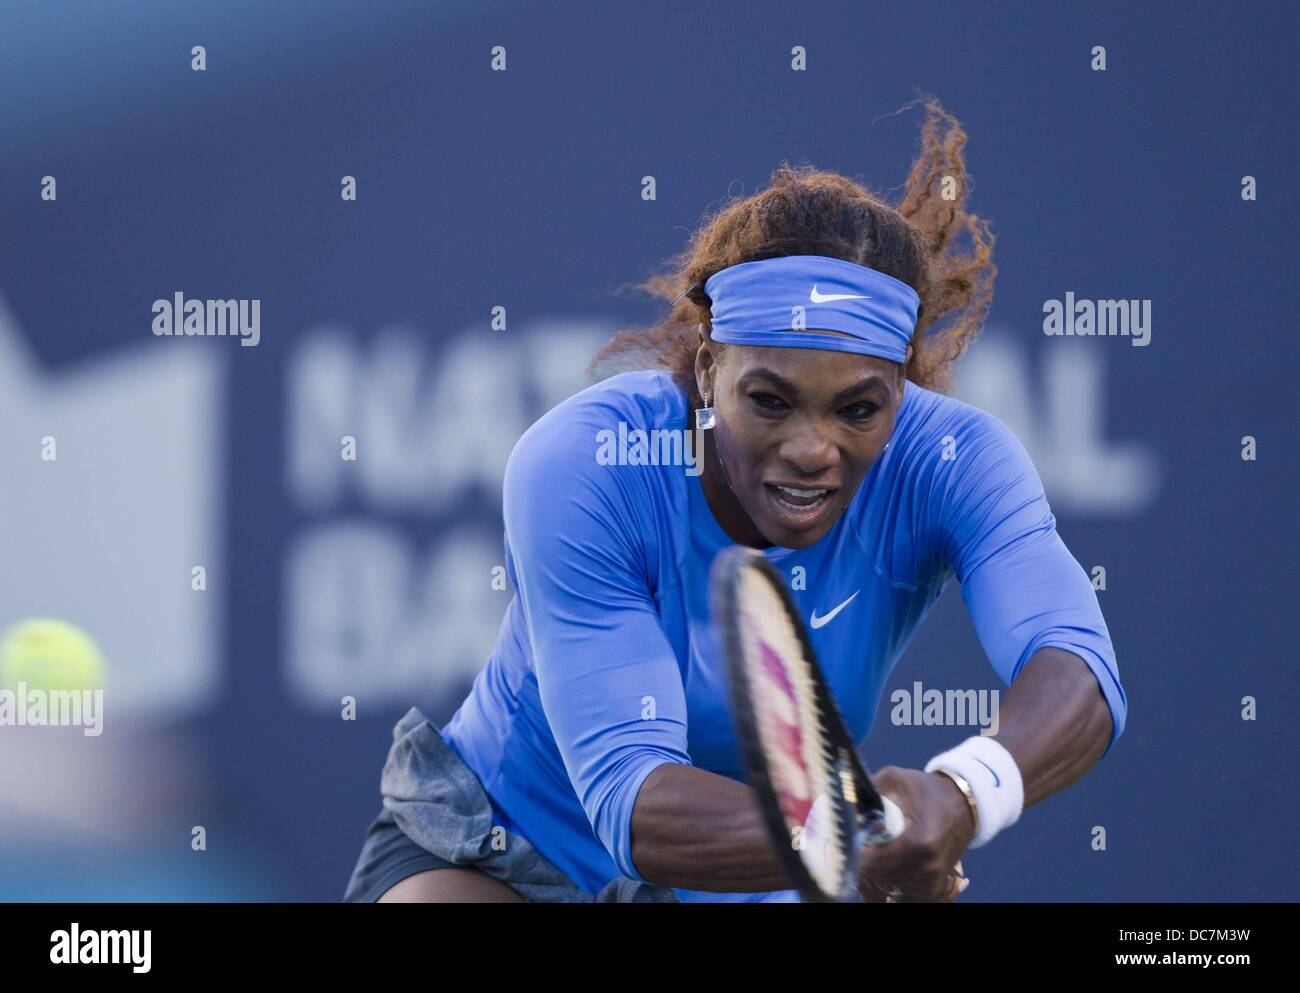 Toronto, Canada. 10th Aug, 2013. Rogers Canadian Open tennis championships. Serena Williams of The United States - Stock Image